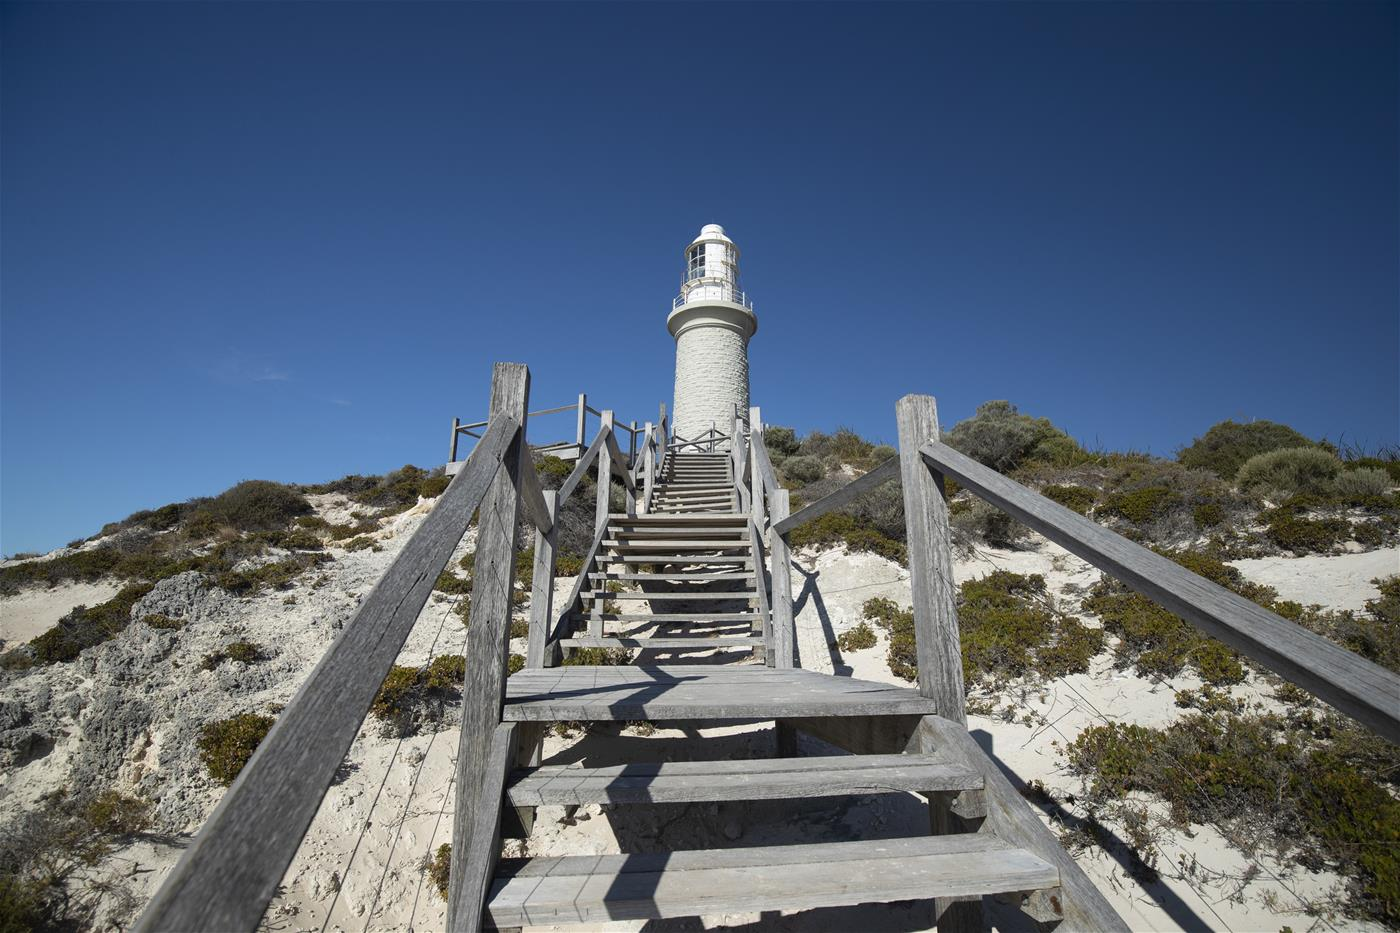 Rottnest Island Lighthouse on top of the steps from the beach.